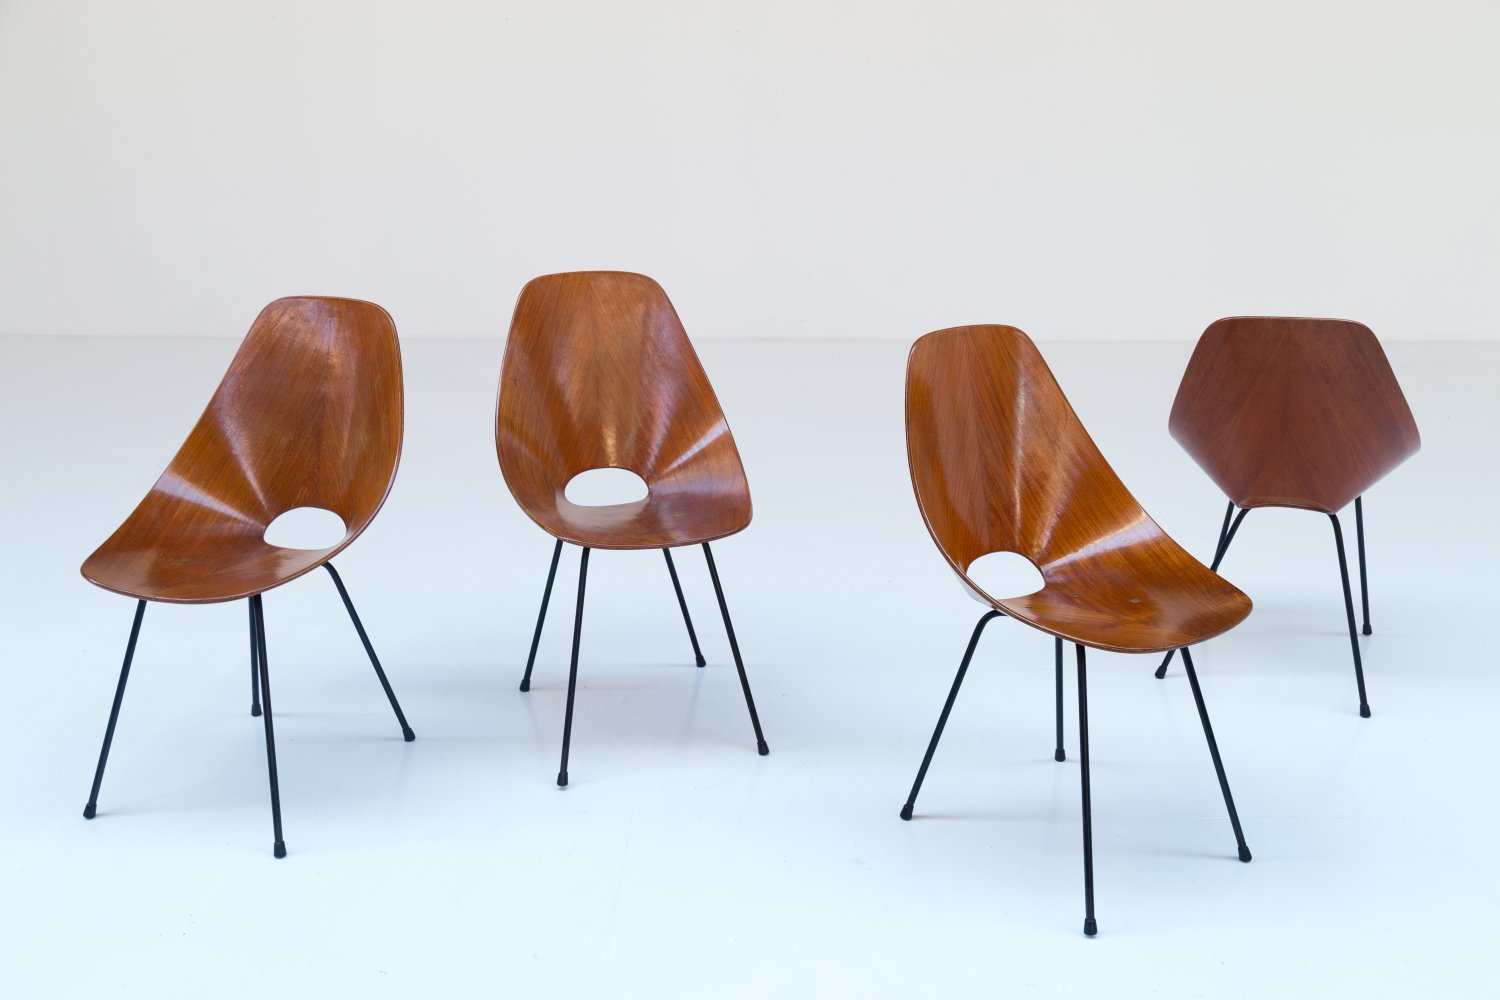 Set of 4 Medea chairs by Vittorio Nobili